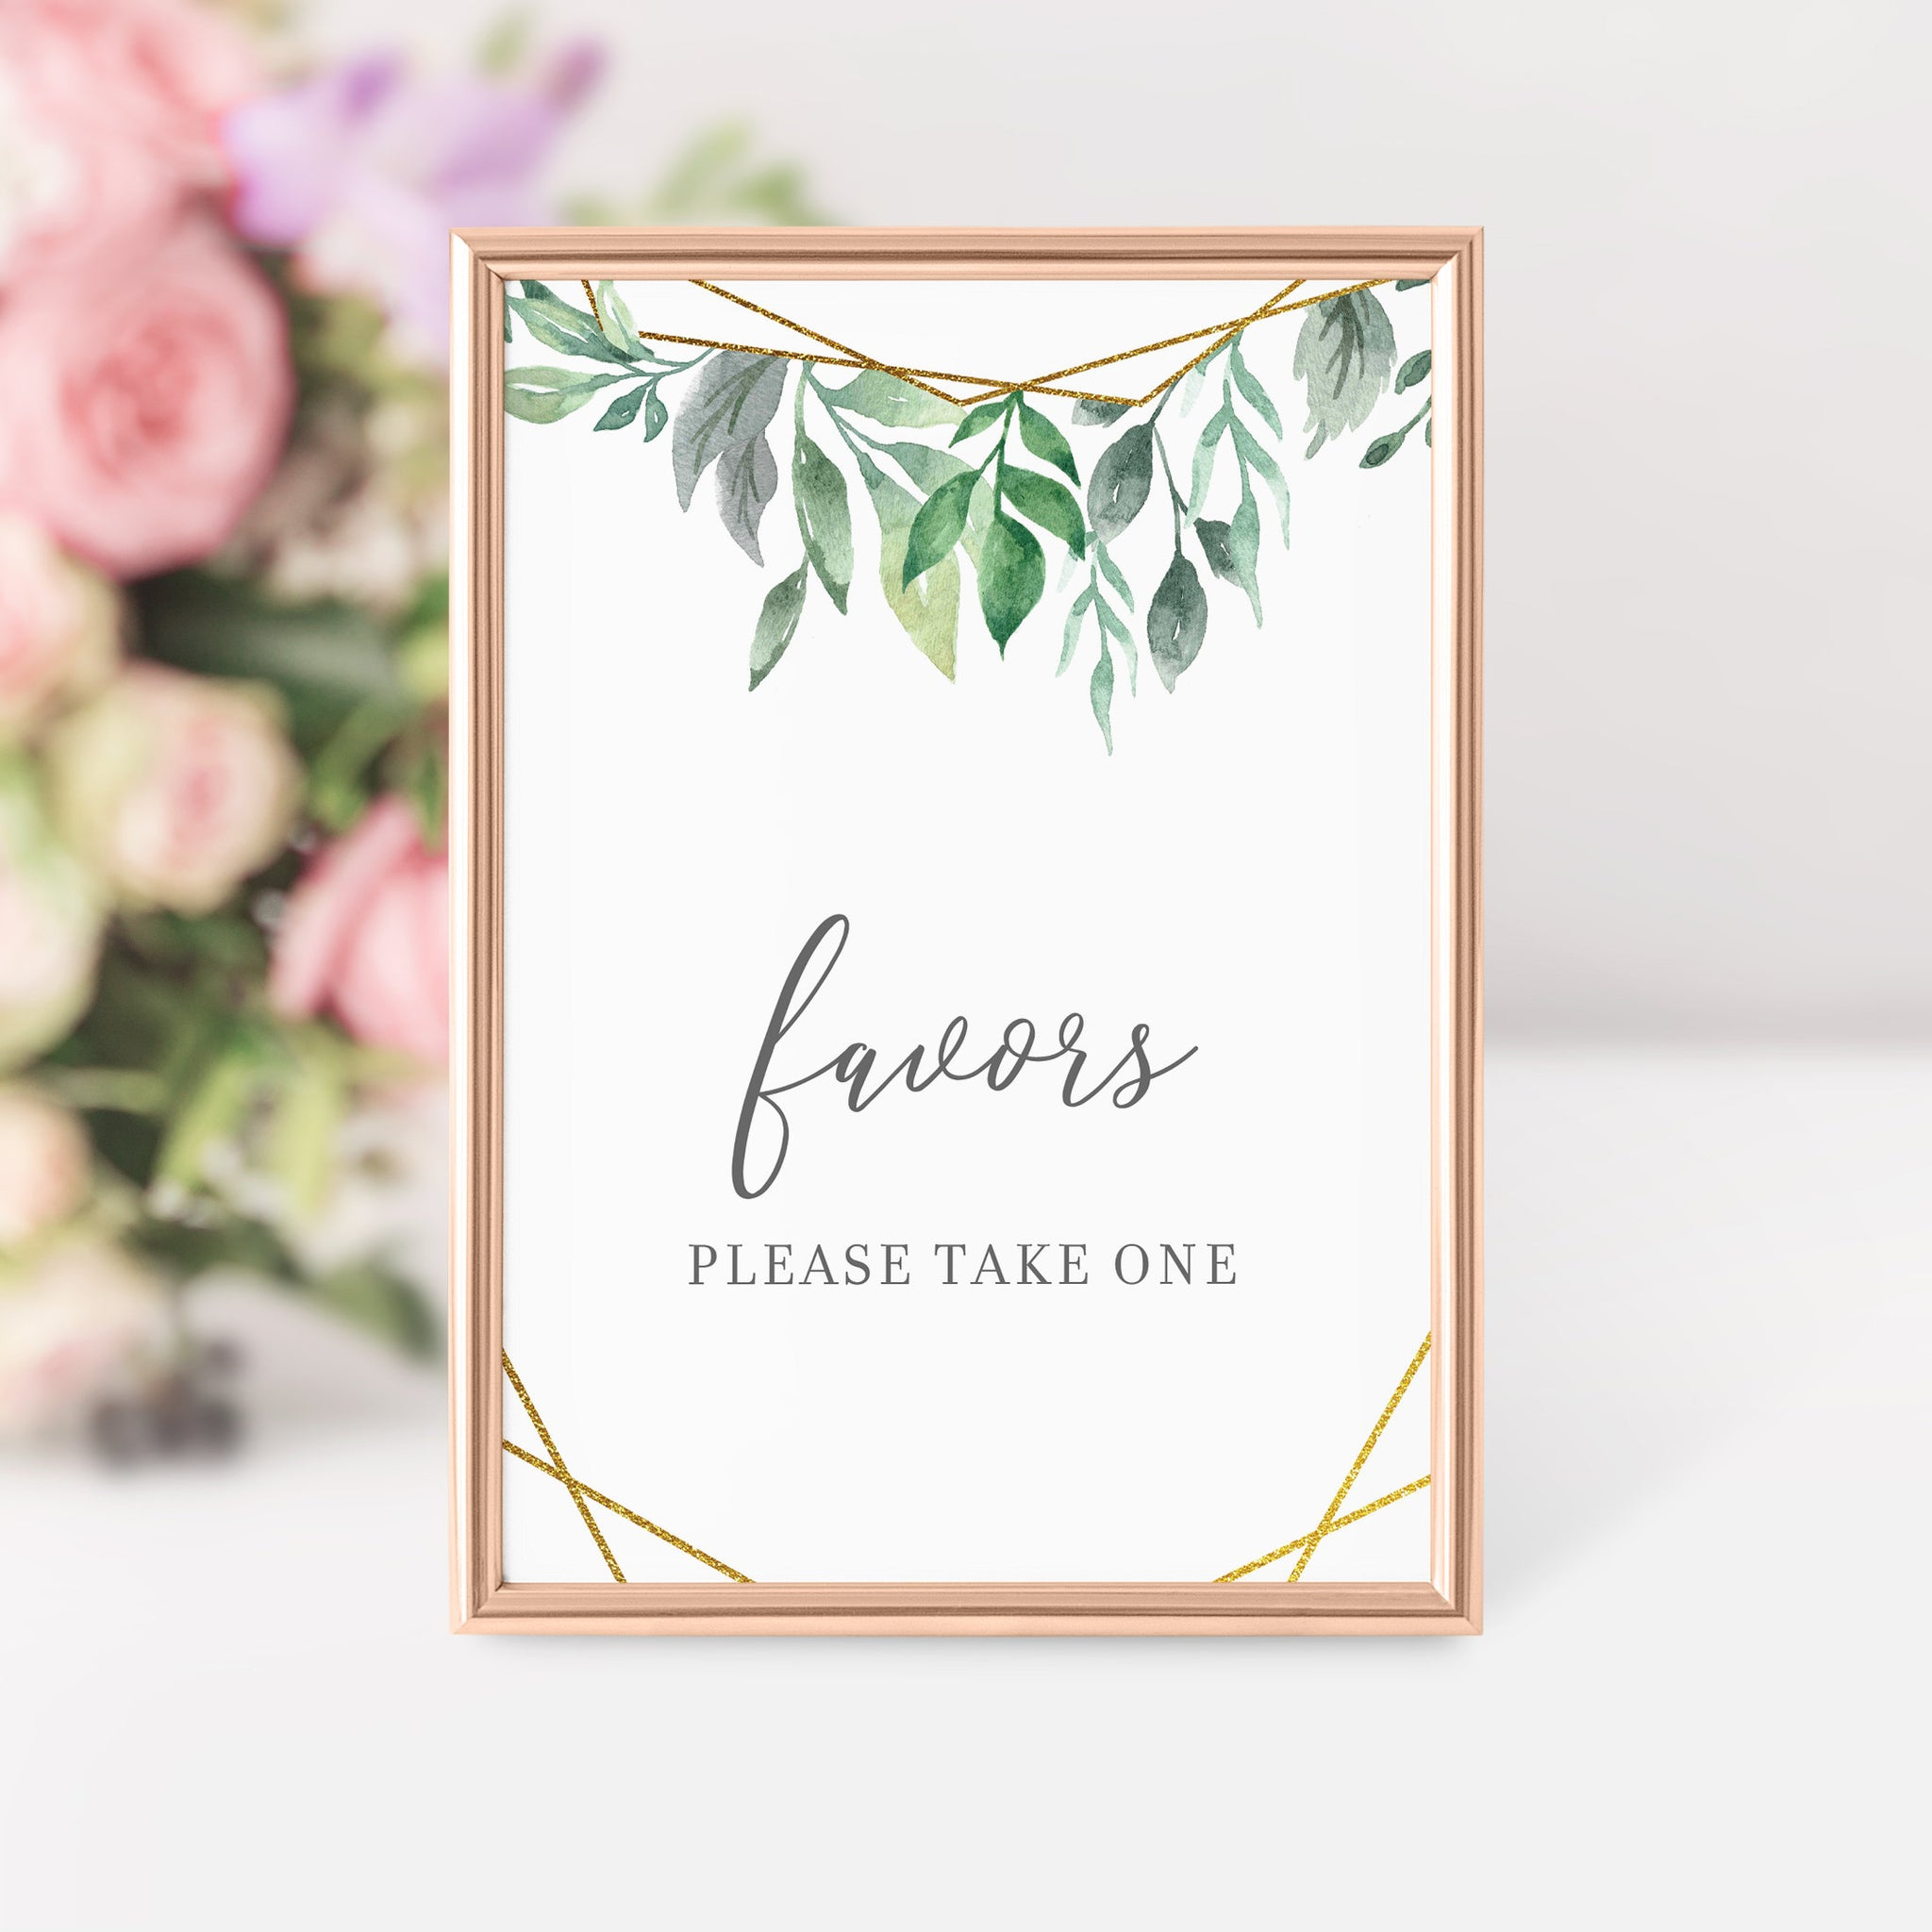 Geometric Gold Greenery Printable Favors Sign INSTANT DOWNLOAD, Birthday, Bridal Shower, Baby Shower, Wedding Decorations Supplies - GFG100